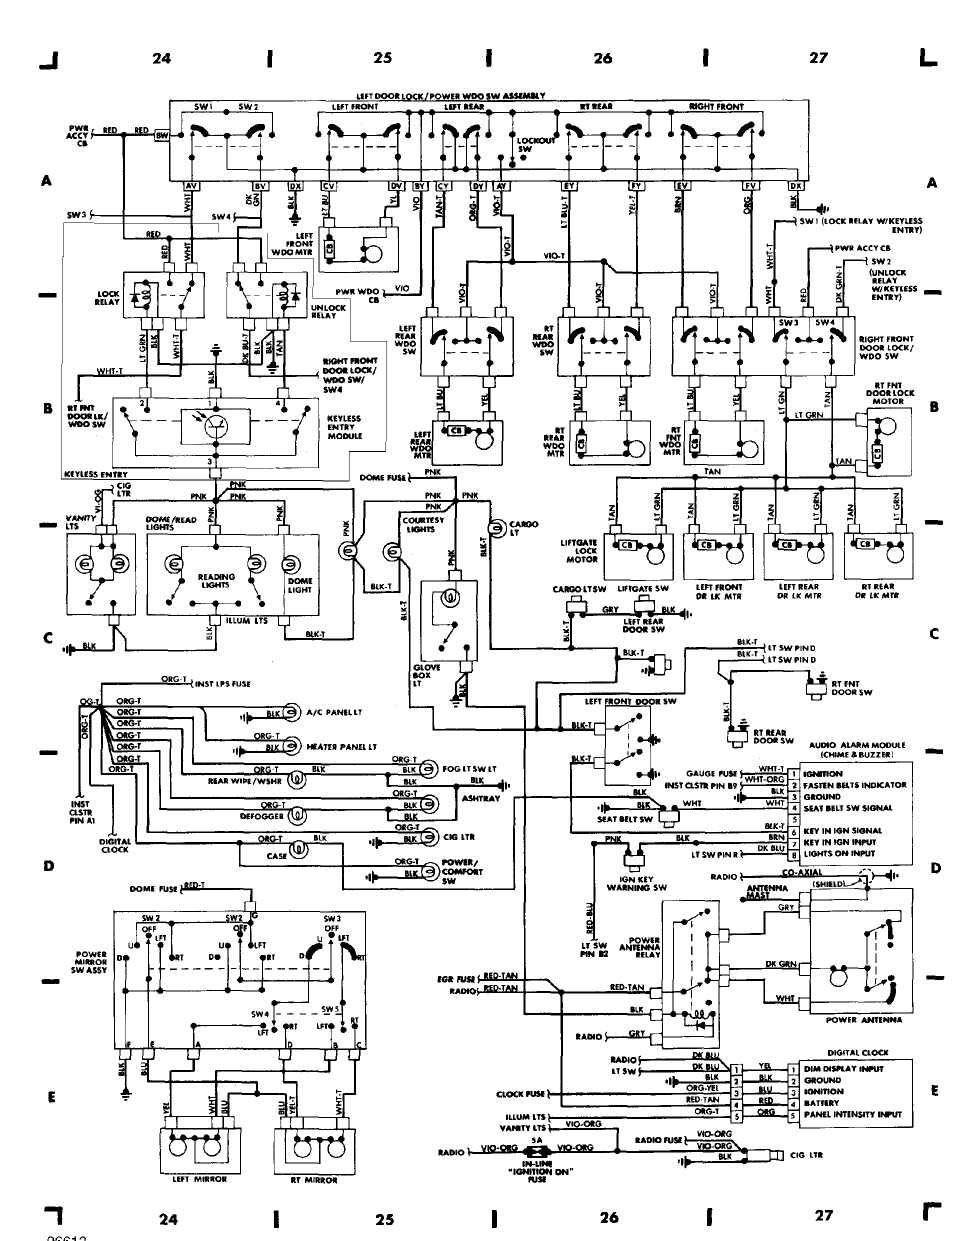 2001 Jeep Wiring Harness Diagram Archive Of Automotive Wrangler Schematic Xj Just Data Rh Ag Skiphire Co Uk